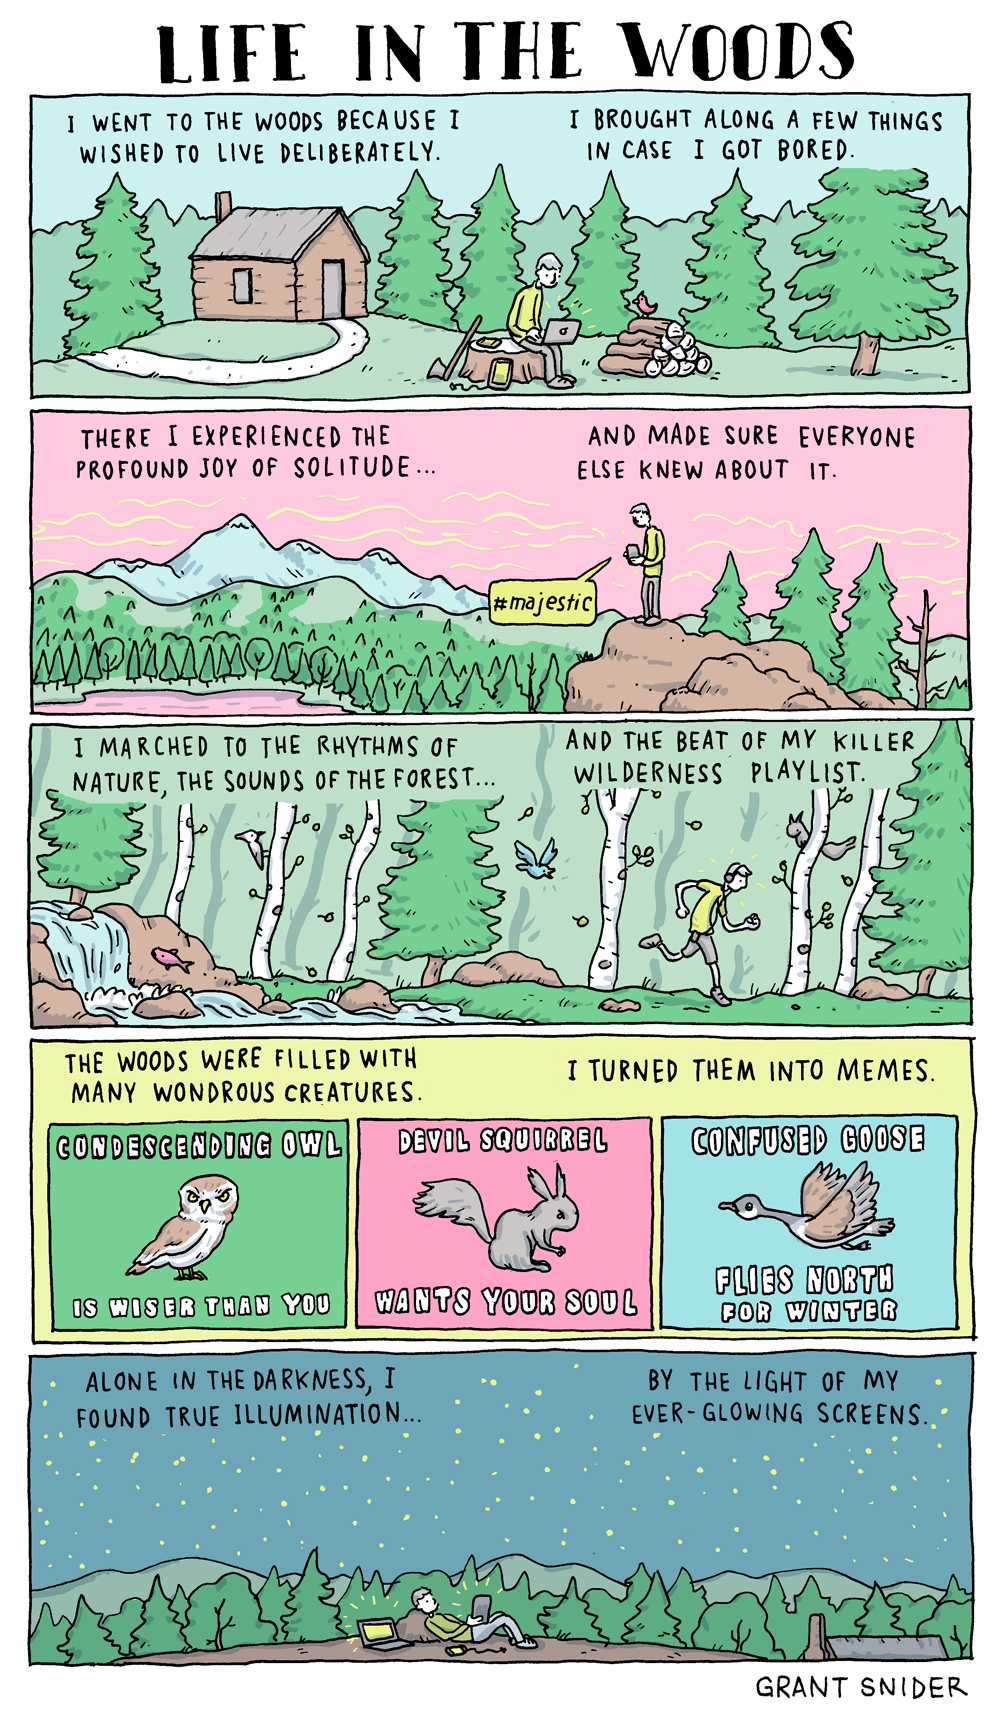 Life in the Woods, Grant Snider